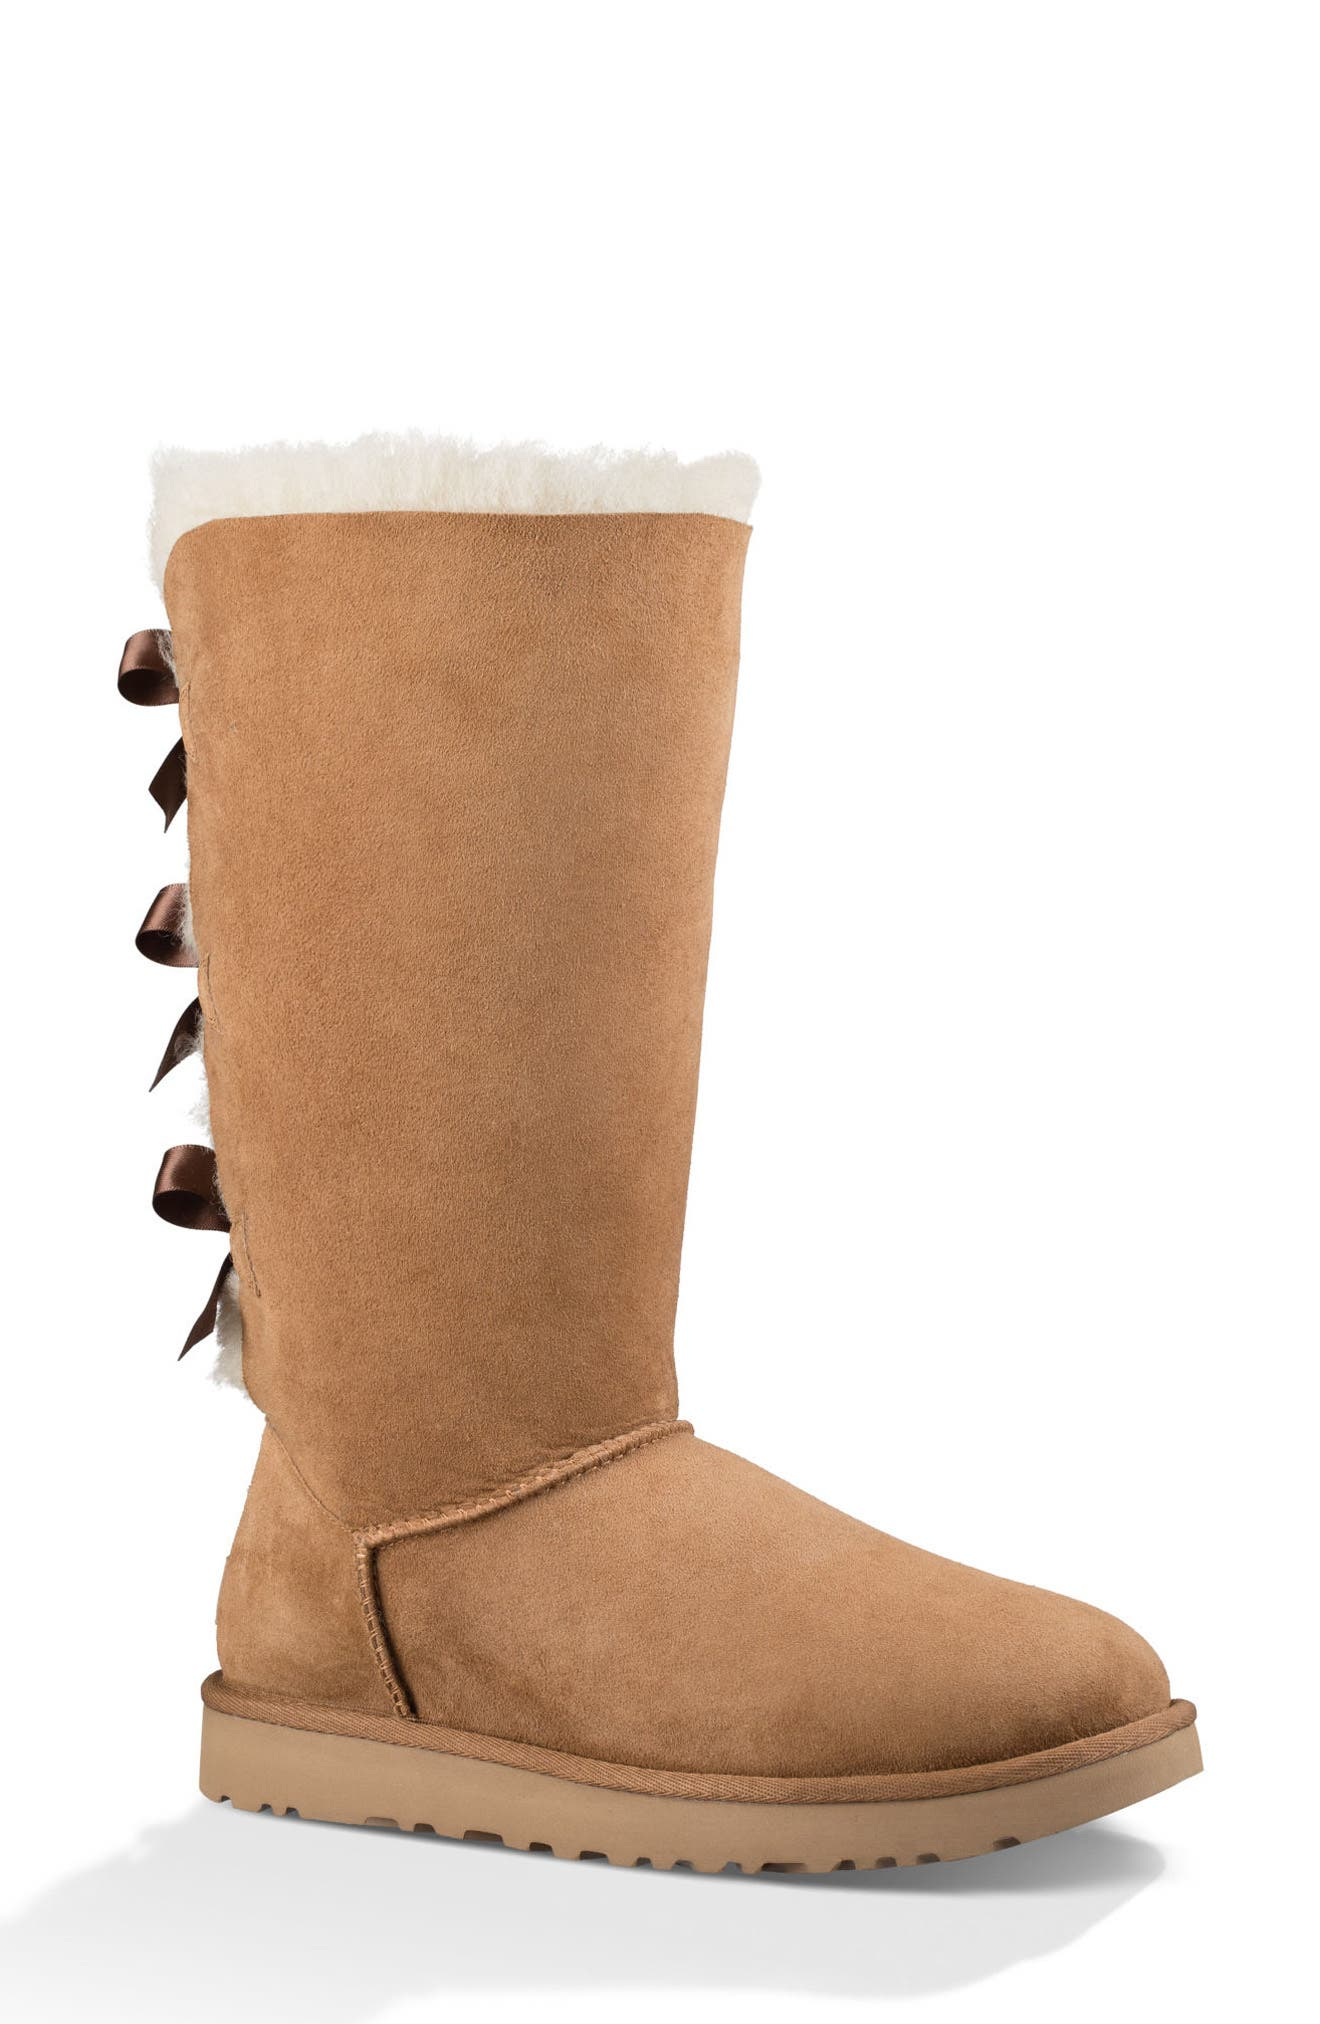 Bailey Bow Tall II Boot,                             Main thumbnail 1, color,                             Chestnut Suede